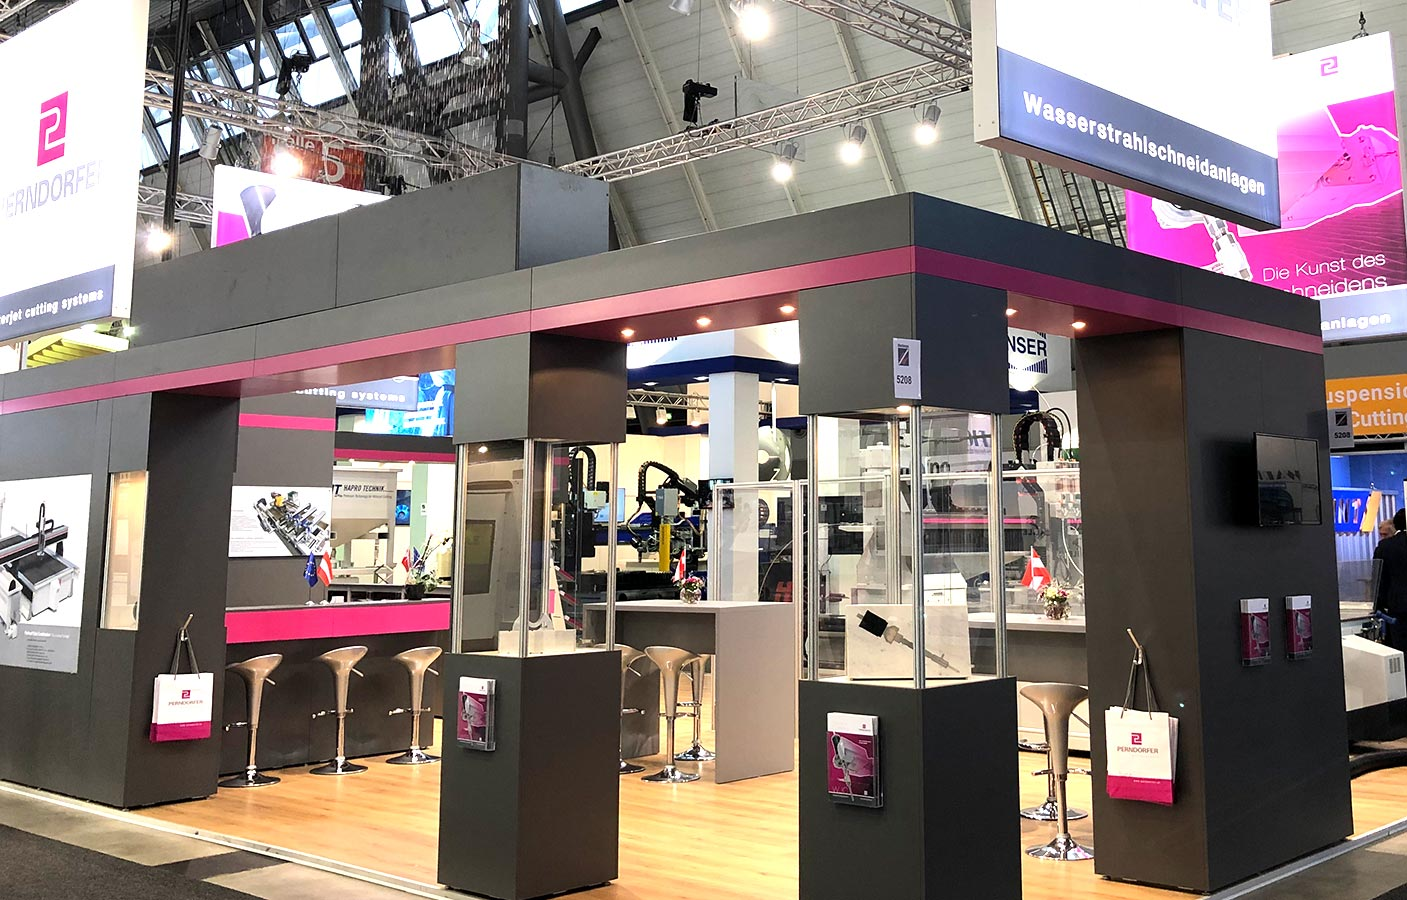 Cutting Systems Perndorfer Messestand